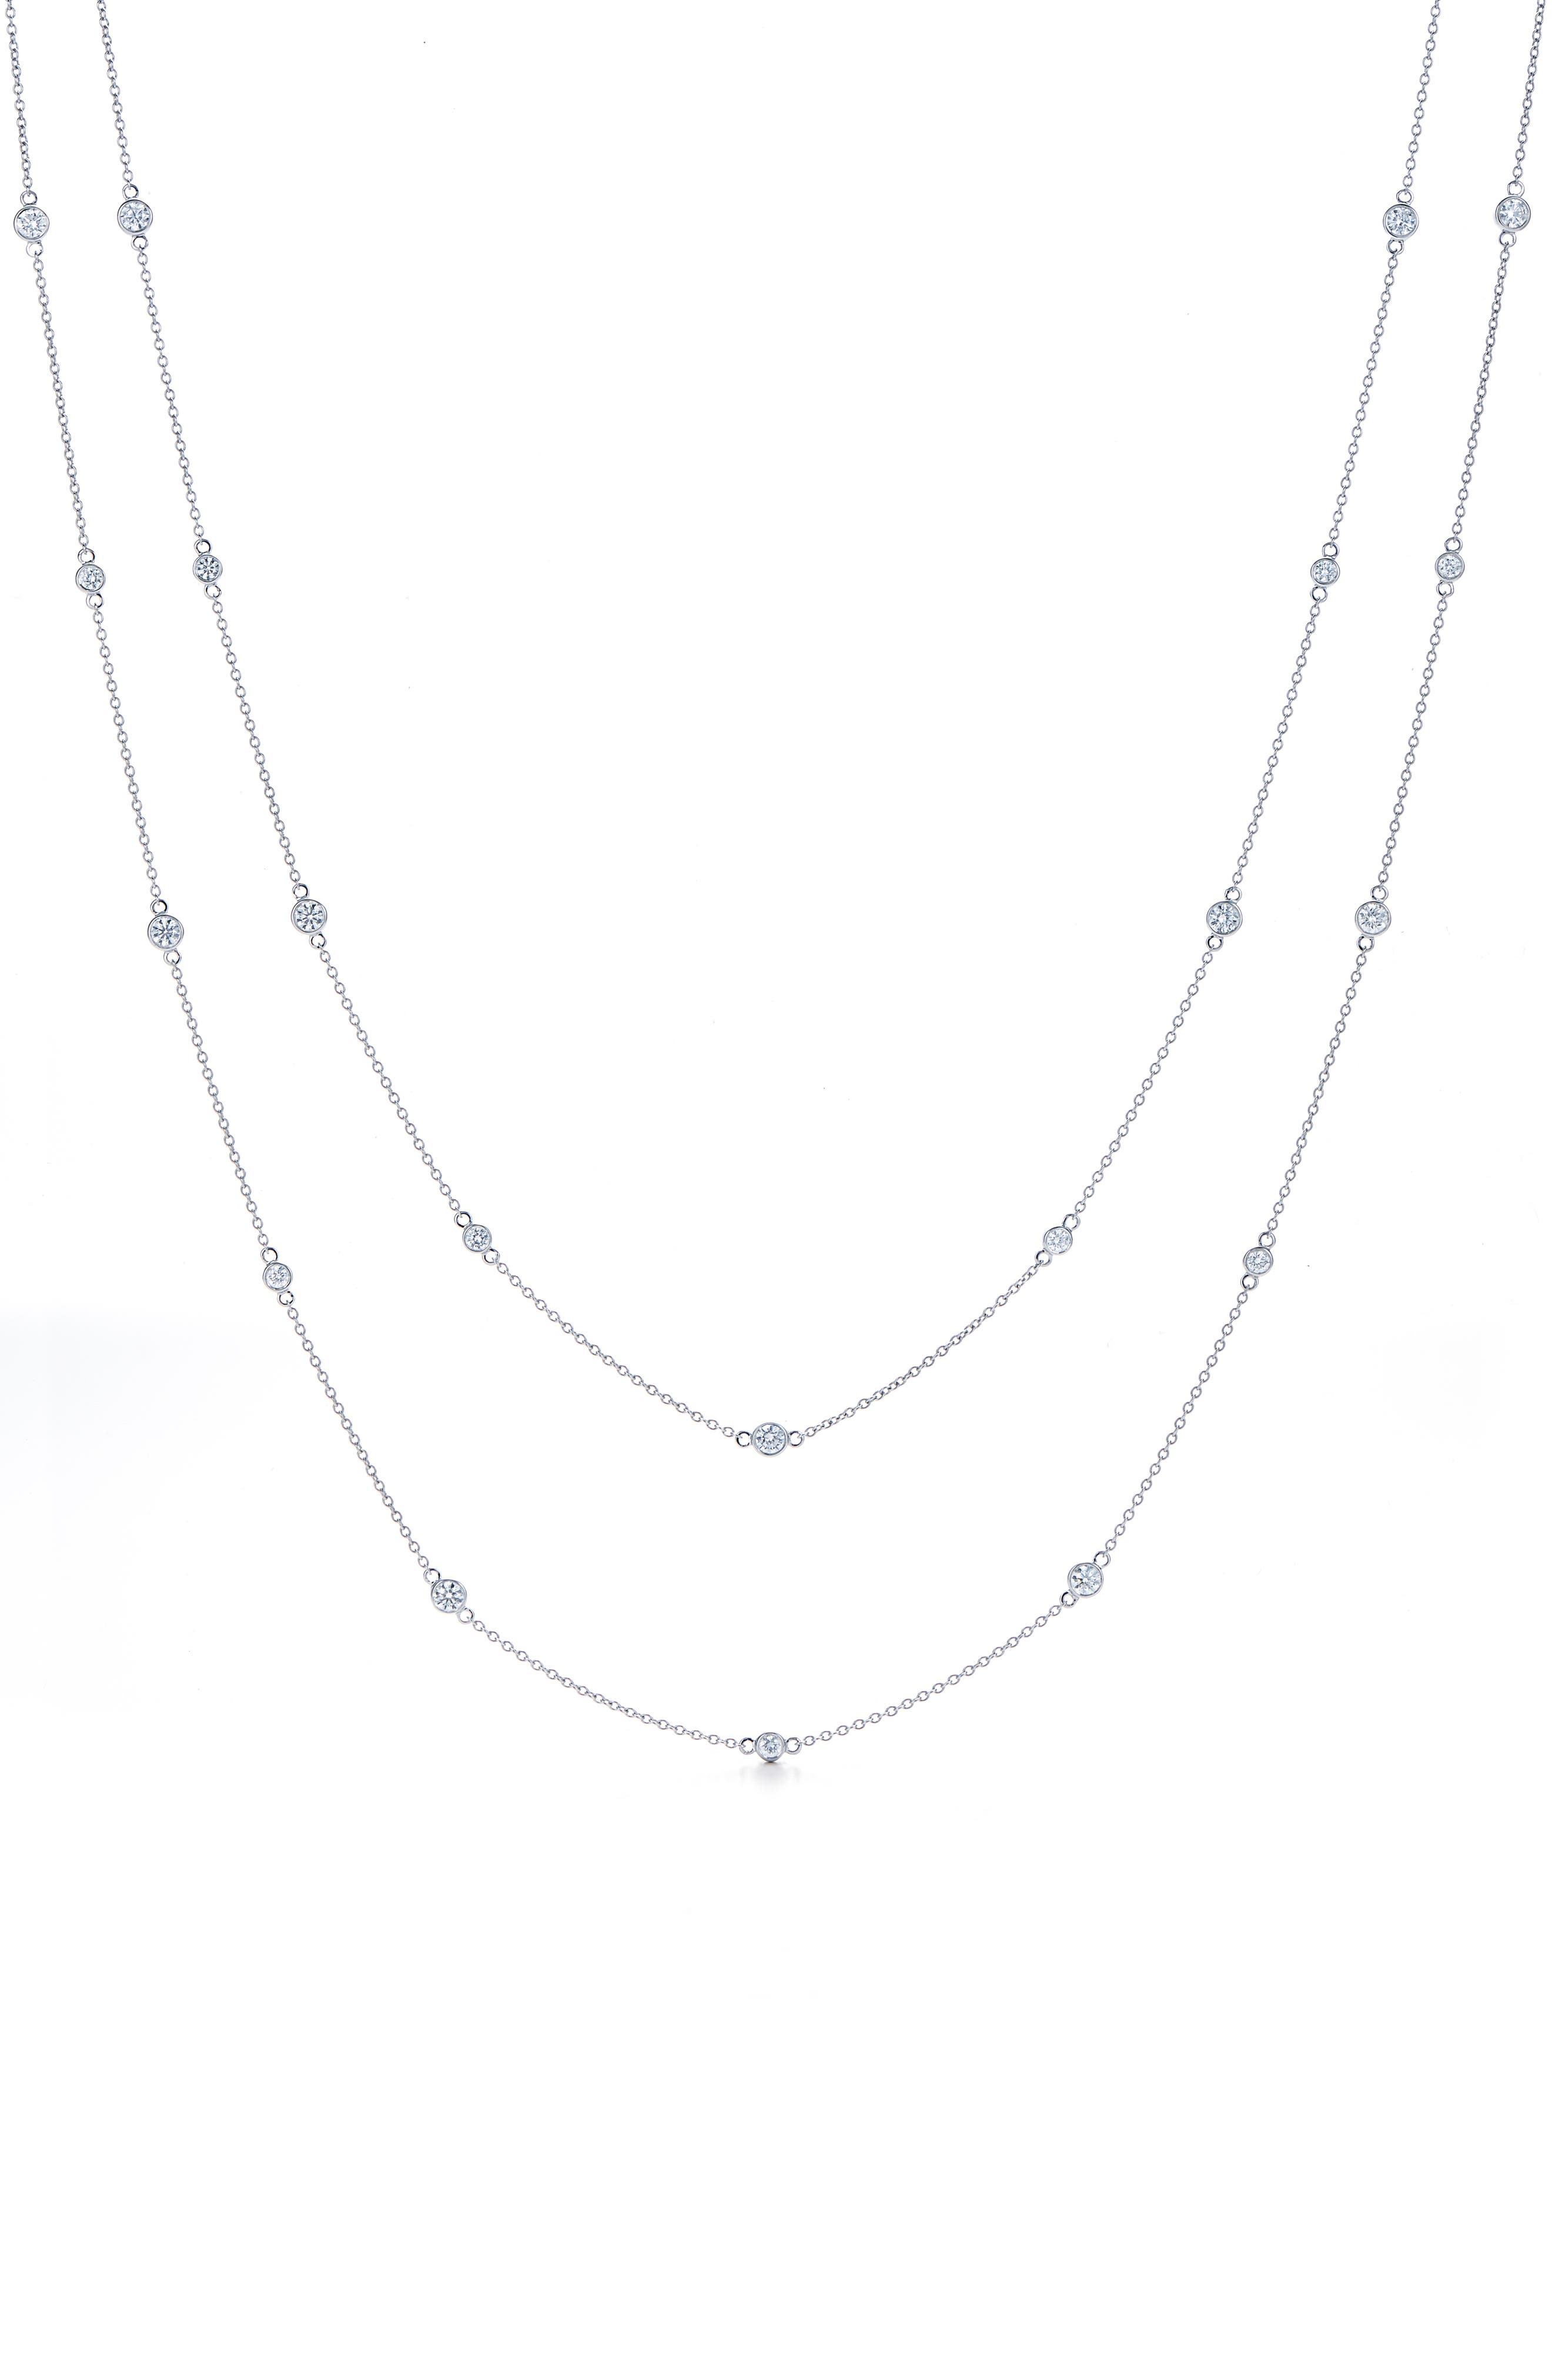 Diamond Strings Long Station Necklace,                         Main,                         color, WHITE GOLD